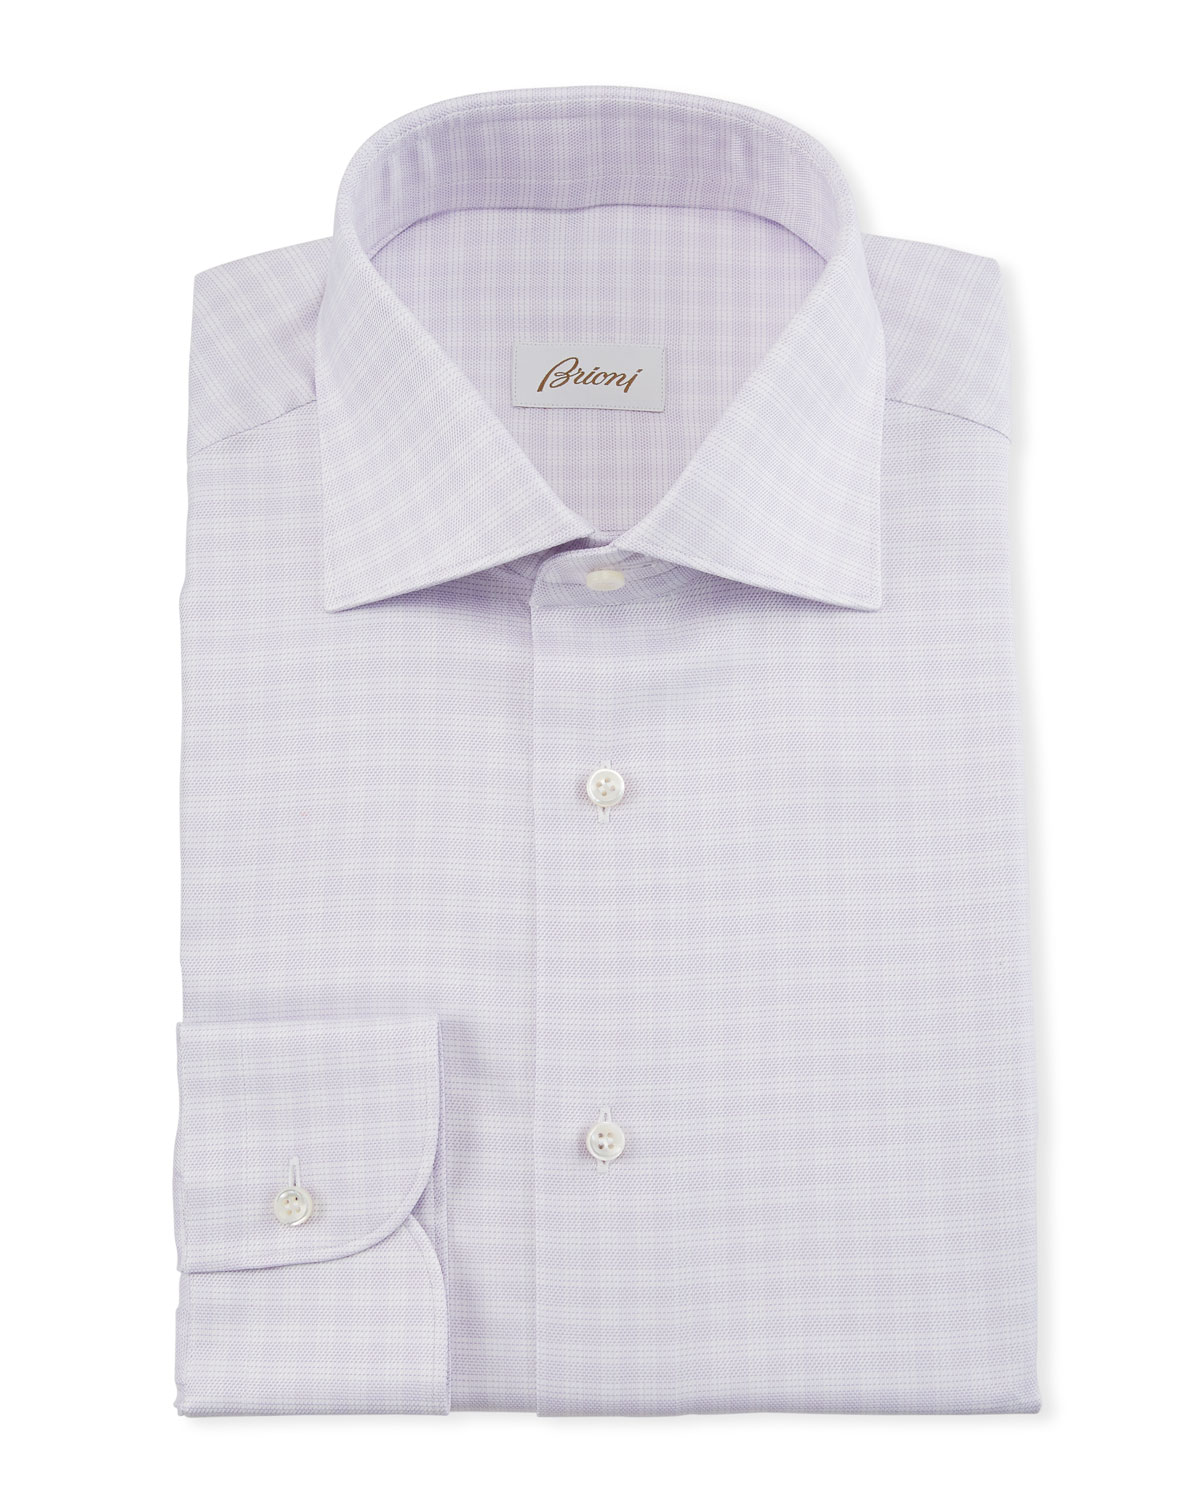 Brioni Men's Lavender Plaid Dress Shirt